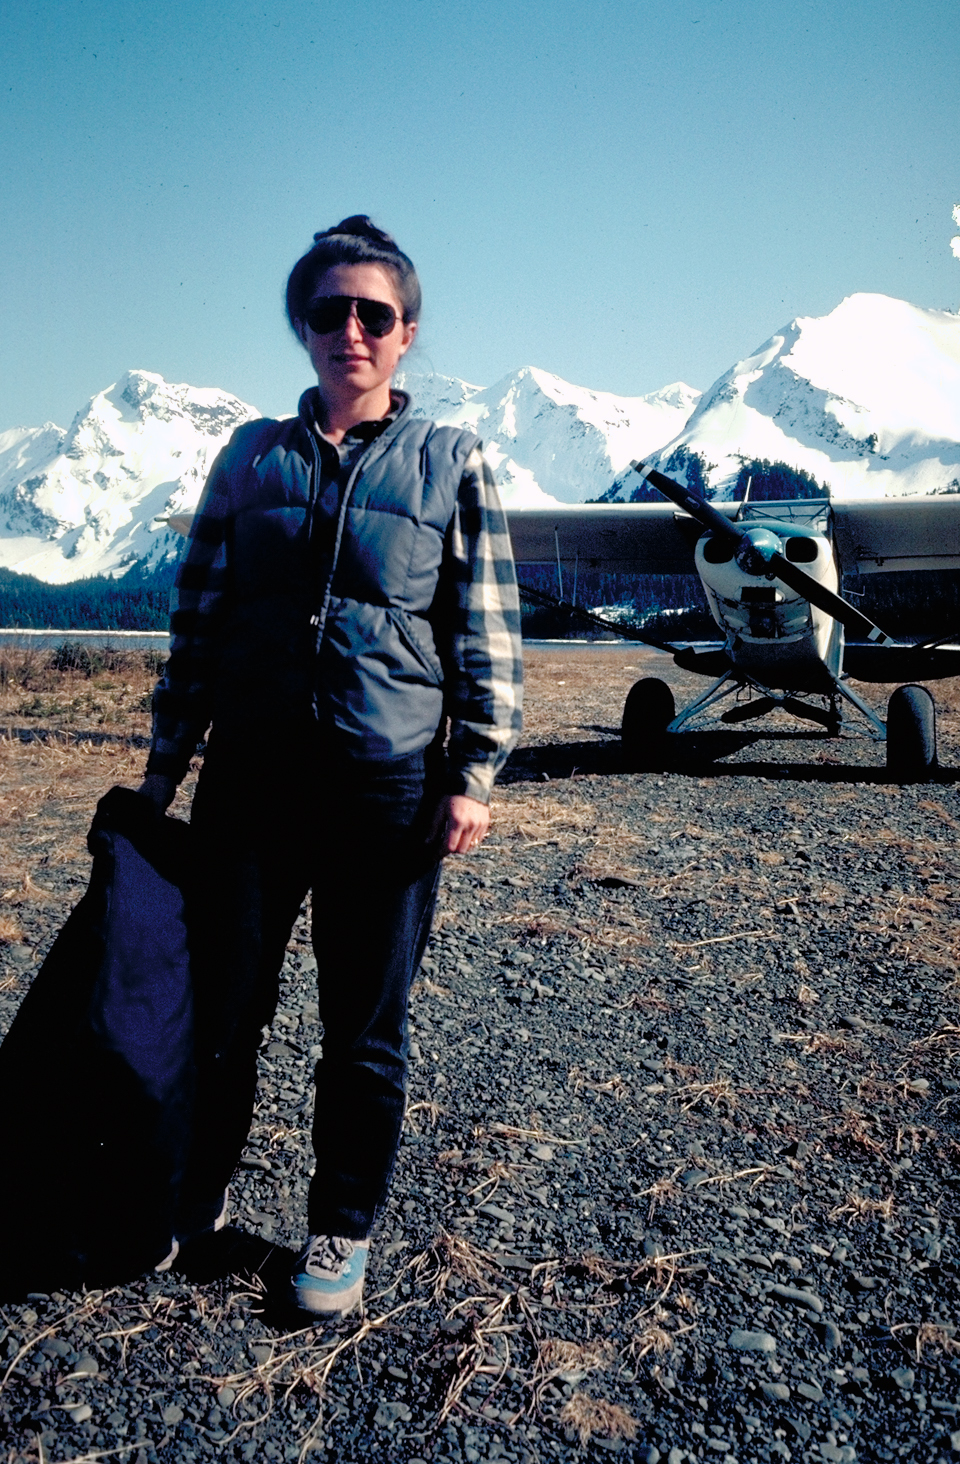 Founder of Wrangell Mountain Air, Natalie Bay with their super cub.